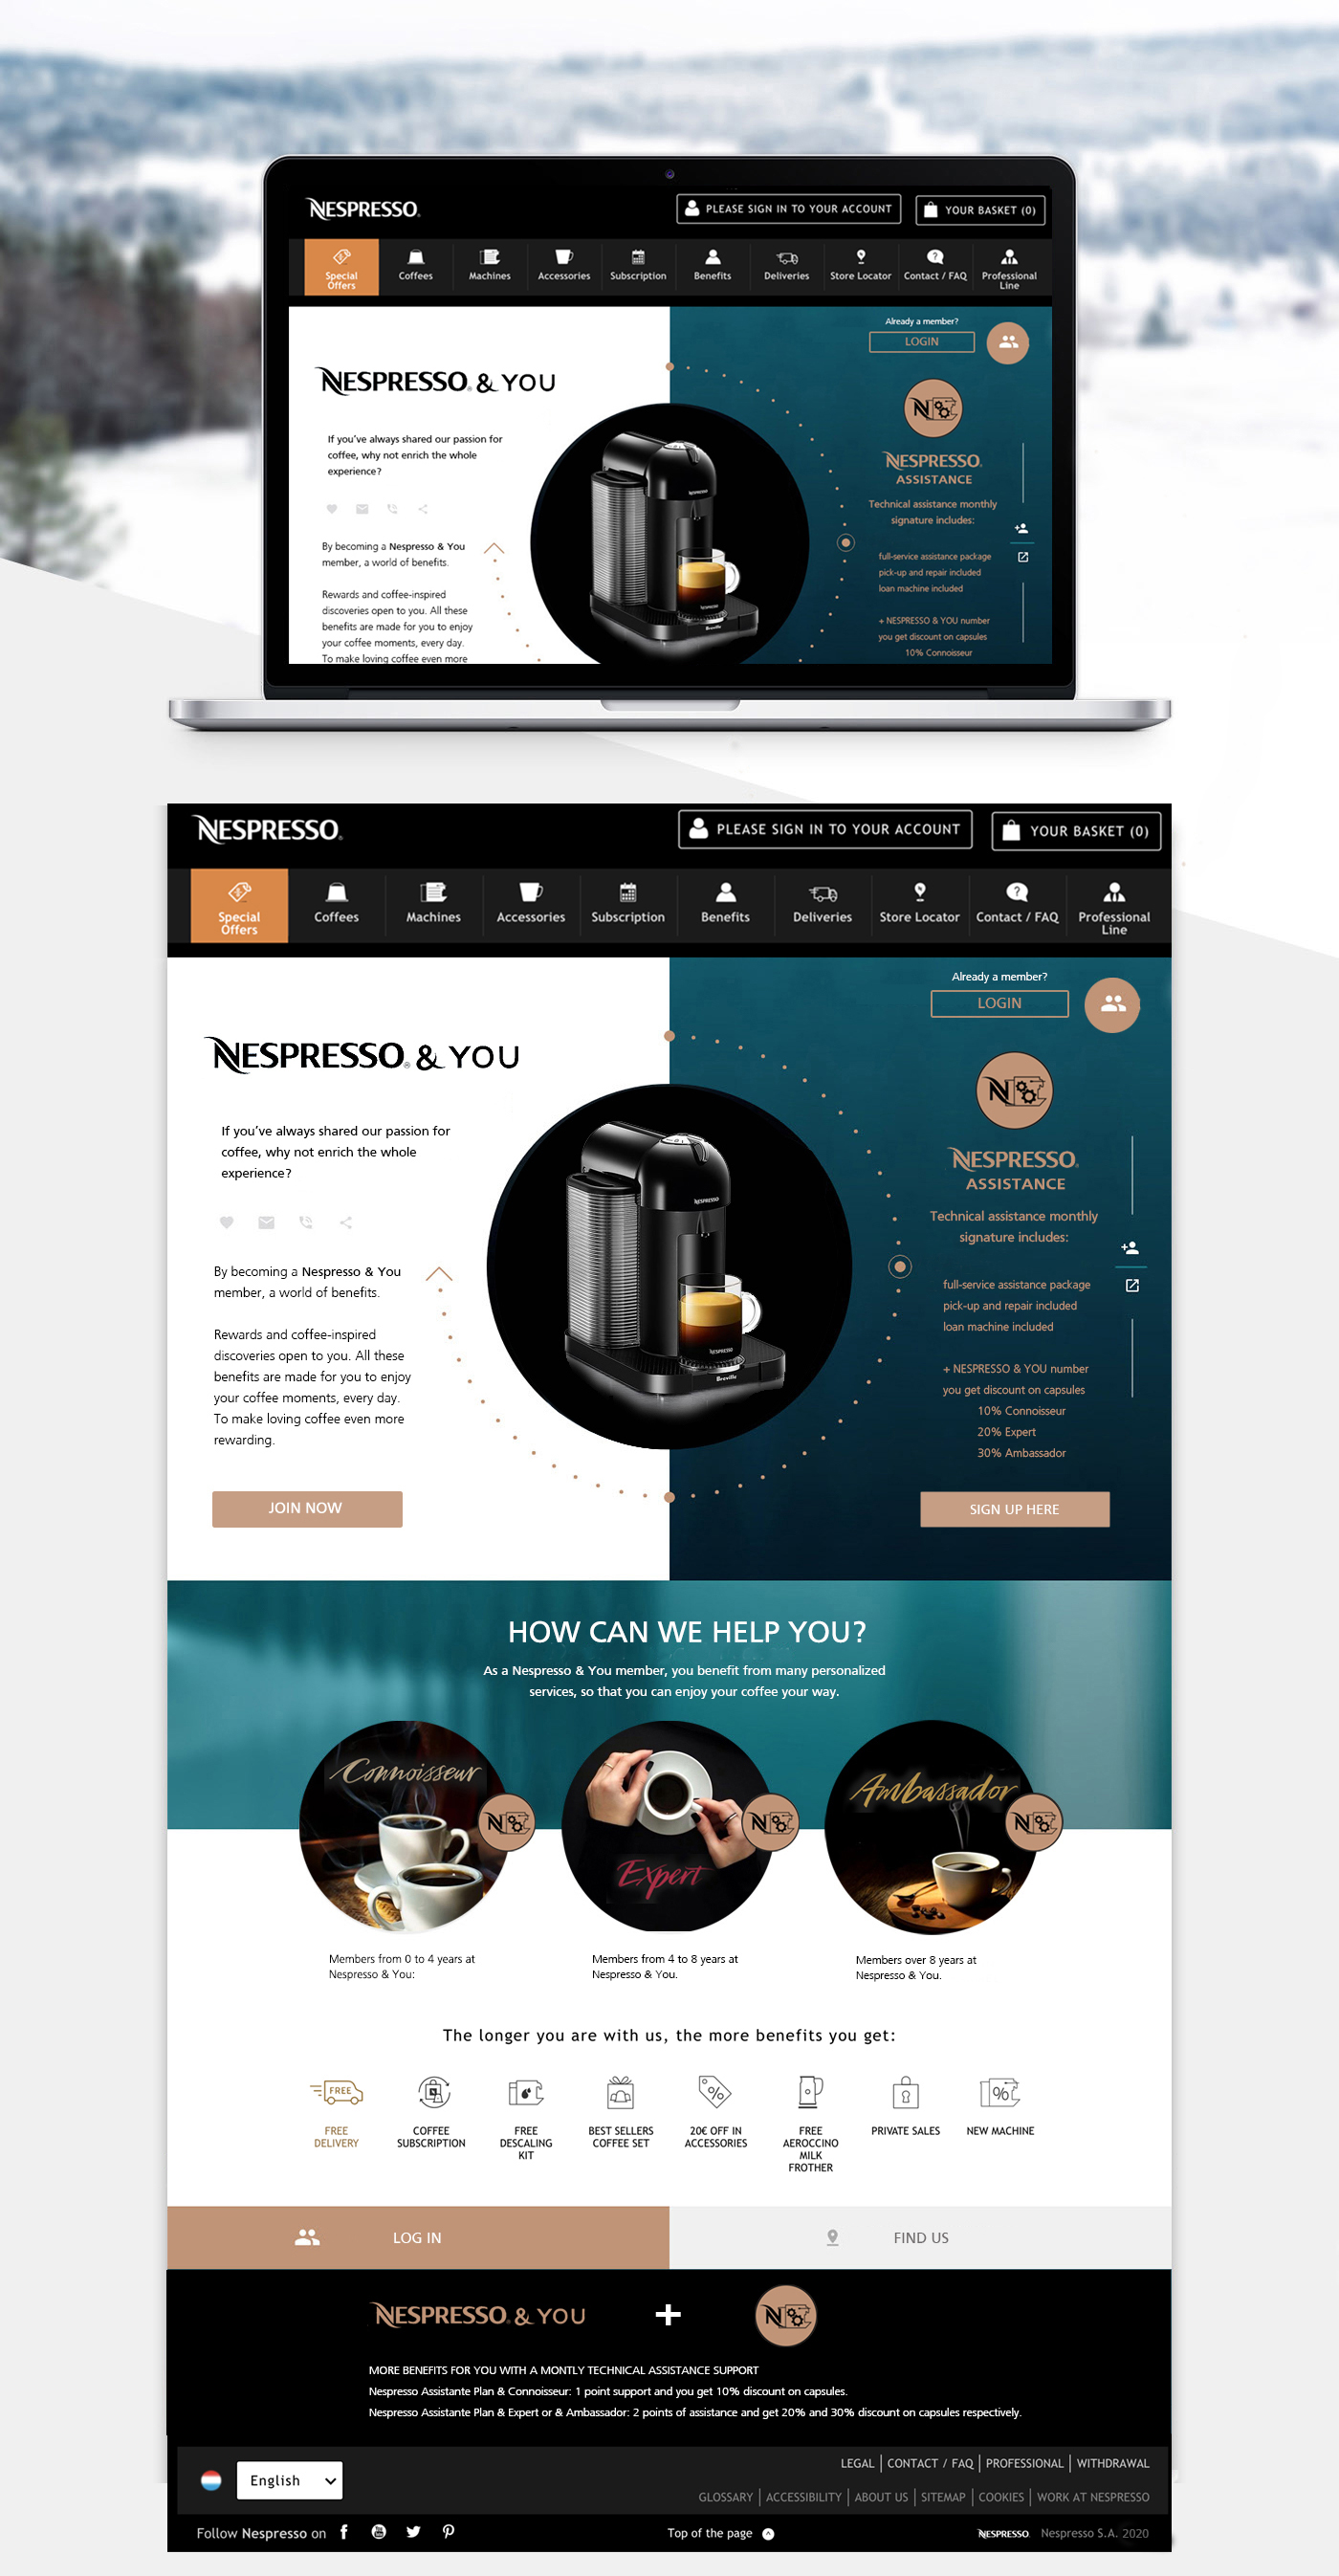 Page presenting the Nespresso Assistance Signature and the benefits within the Capsules Loyalty Program (Nespresso&YOU)